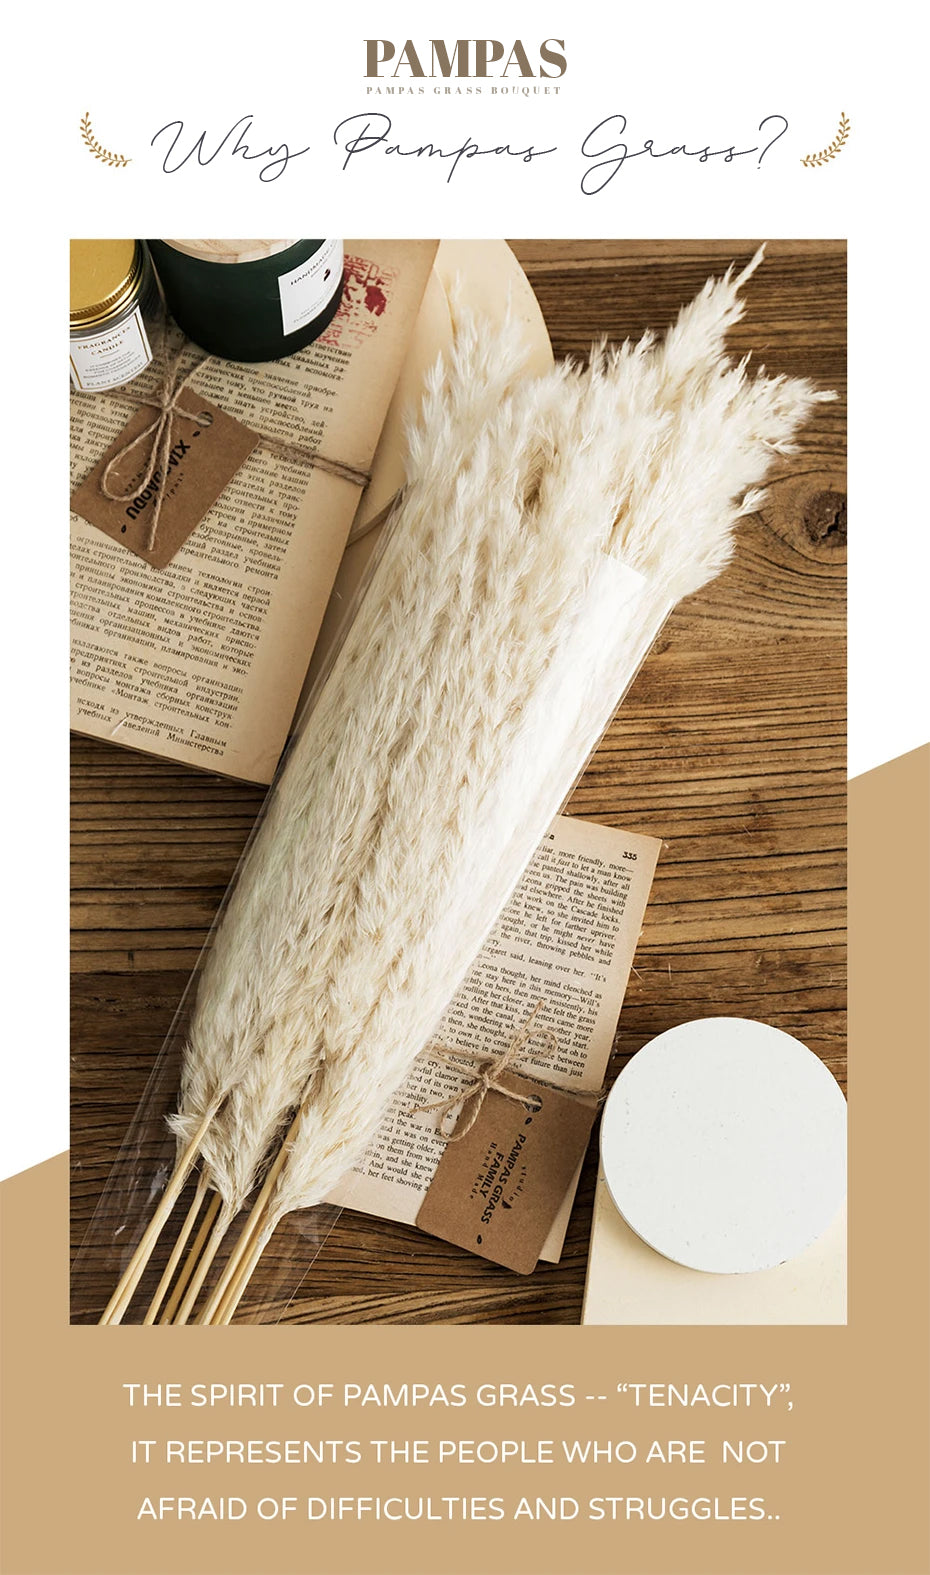 Real Pampas Grass Decor Natural Dried Flowers Modern Bohemian Home Styling Bleached White Color Fluffy Natural Floral Bouquet For Boho Style Home Interior Design